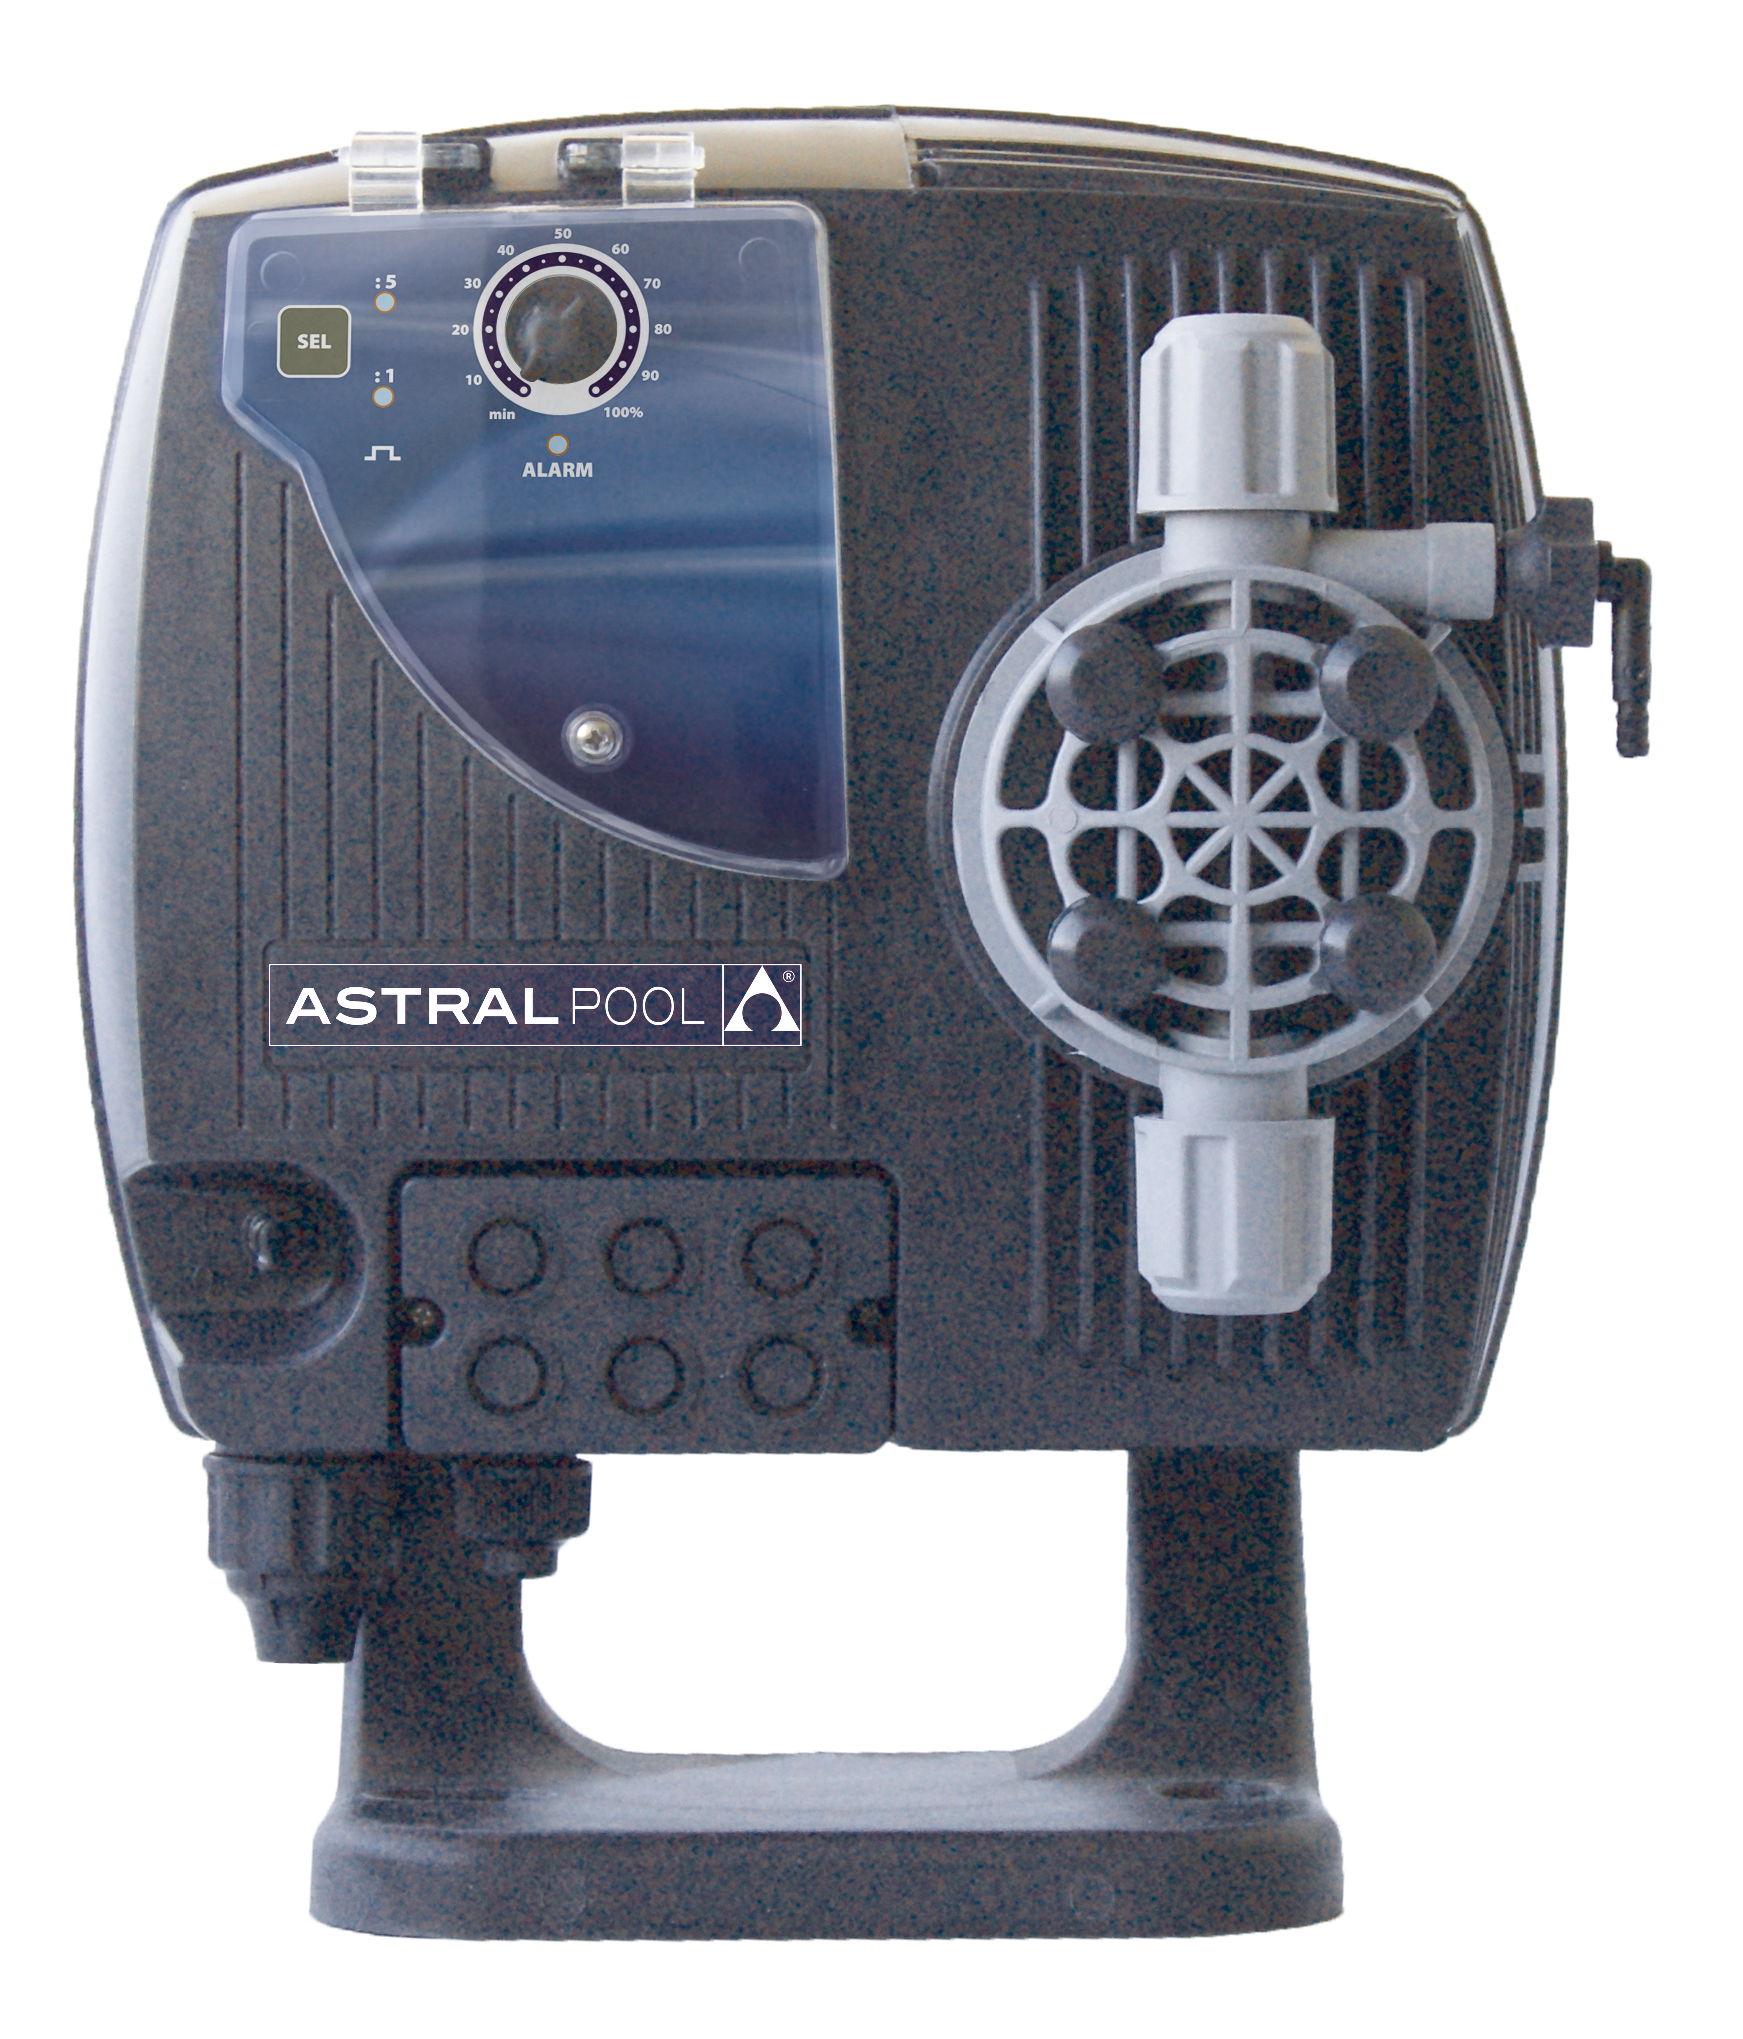 Type b. Manually adjustable from 5-10 bar and 2-5 l/h | astralpool.